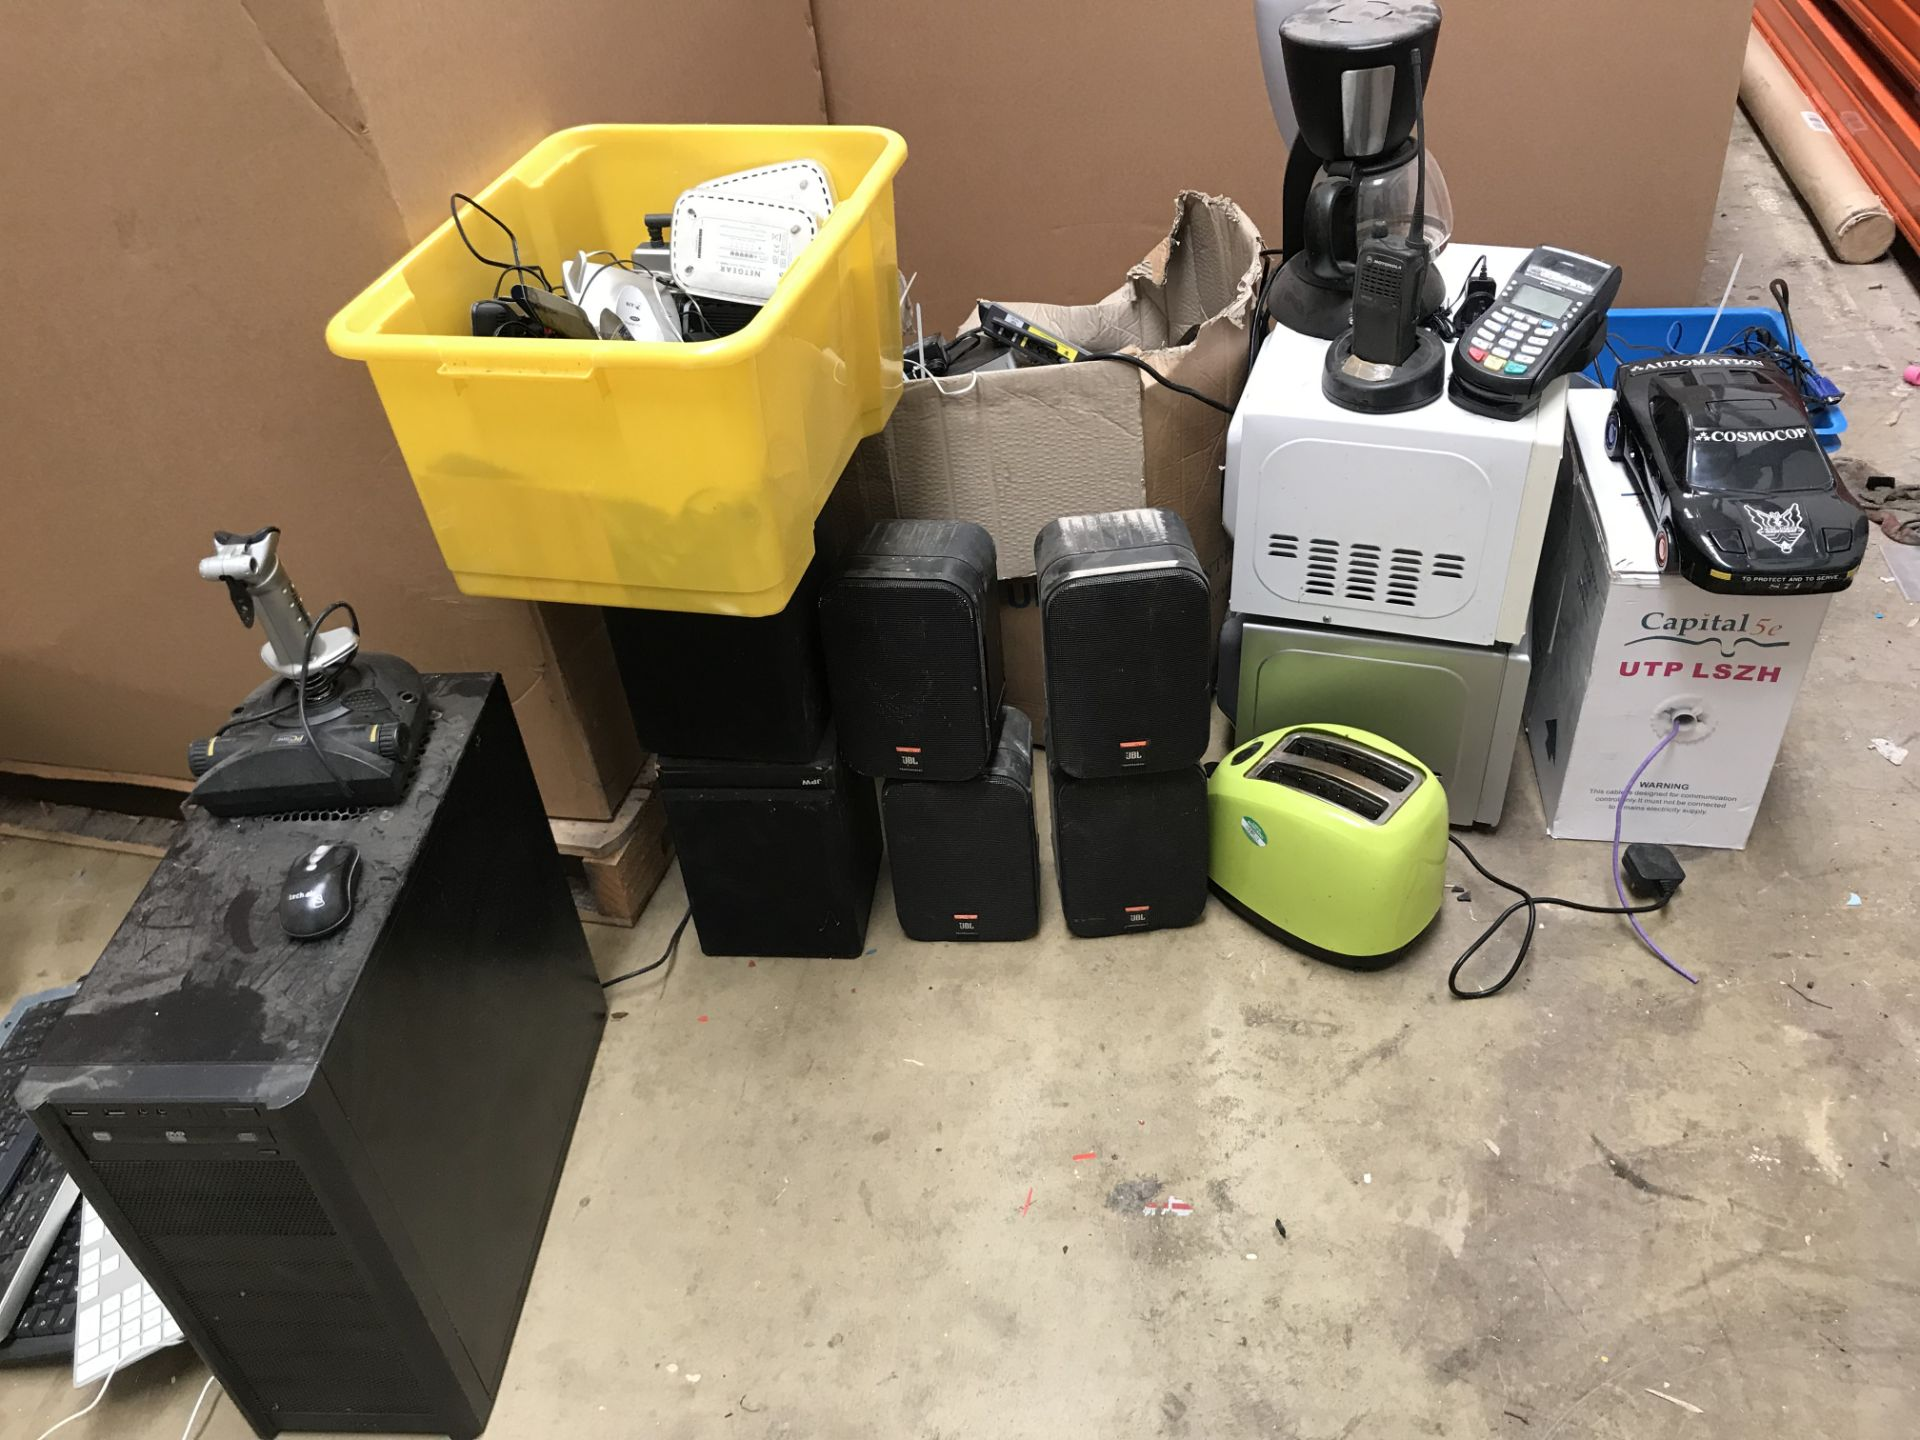 Lot 6 - Computer Monitor, Cat 5 and HDMI Switches - Motorola Radio - Pallet